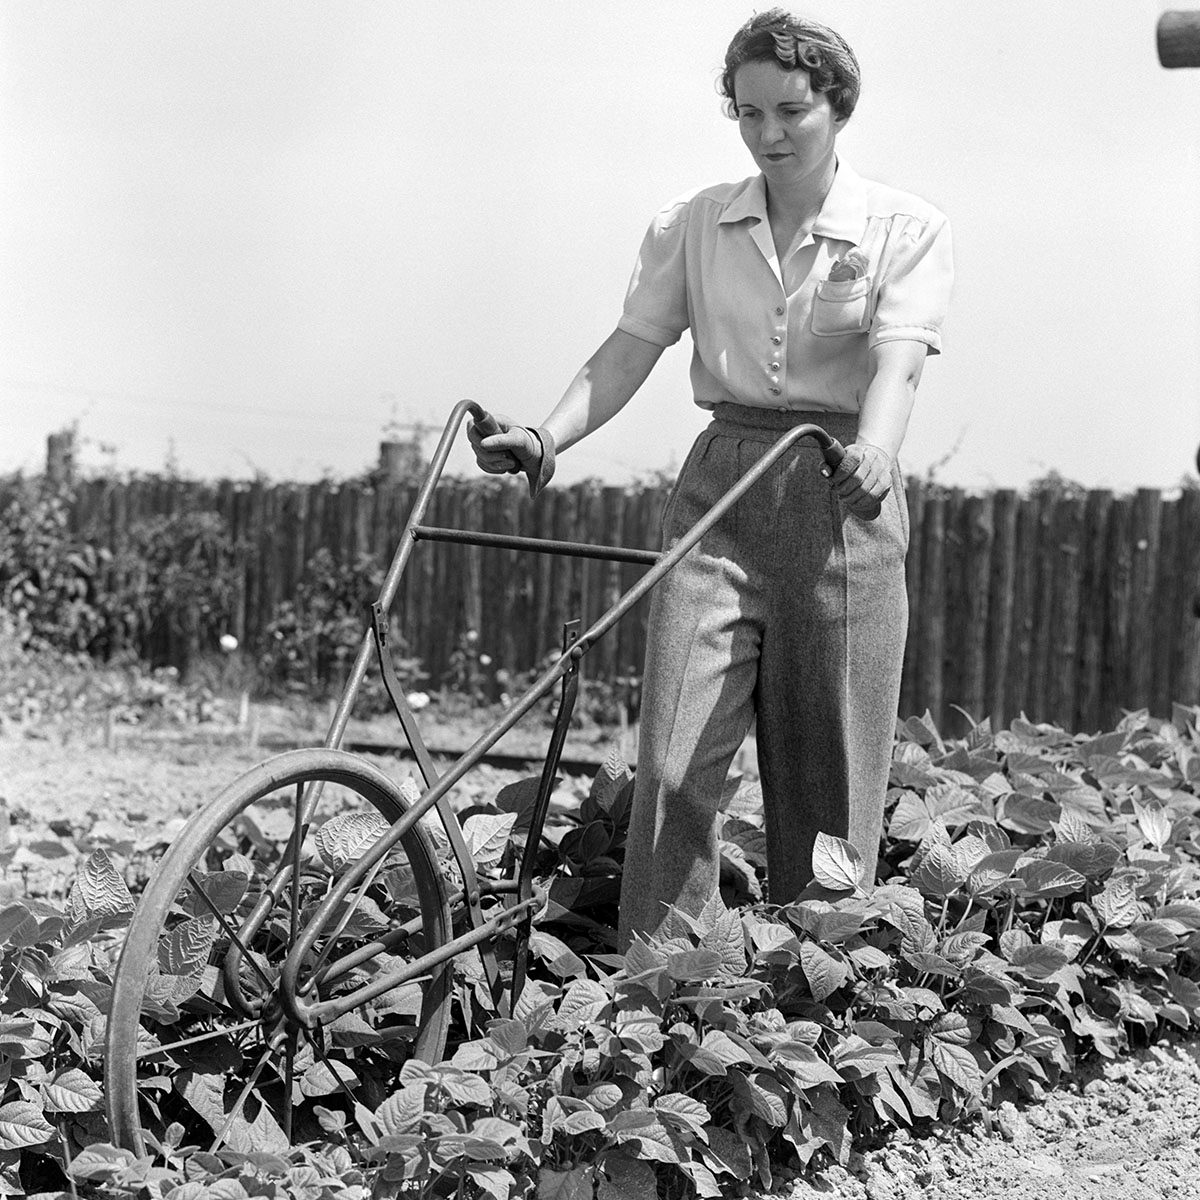 UNITED STATES - Circa 1940s: Woman Wearing Blouse Slacks And Gloves Pushing A Harrow Between Rows Of Plants In A Vegetable Garden With A Rustic Fence In The Background.